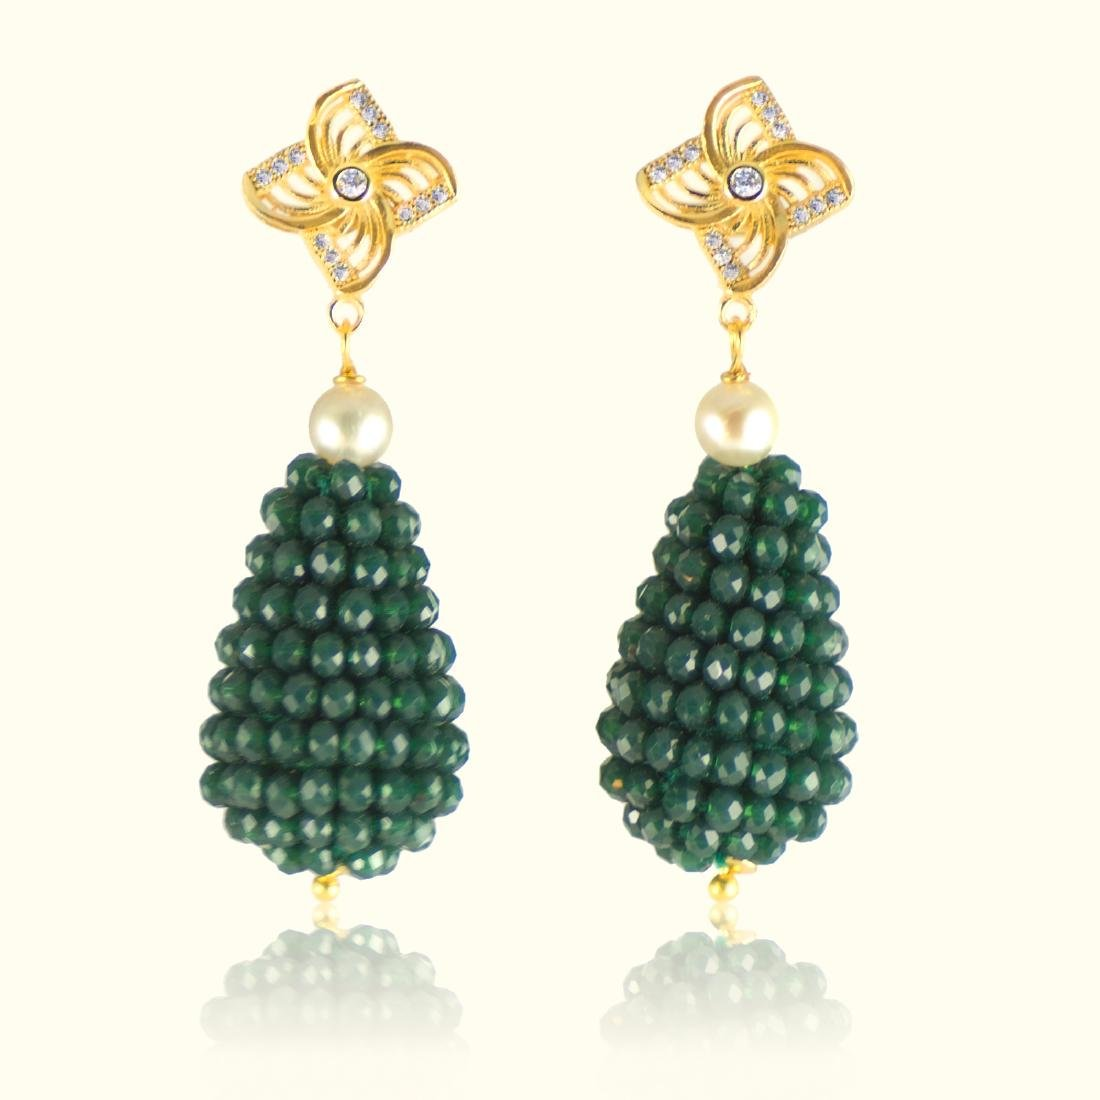 Green Onyx and Pearl Vintage Style Earrings - 2